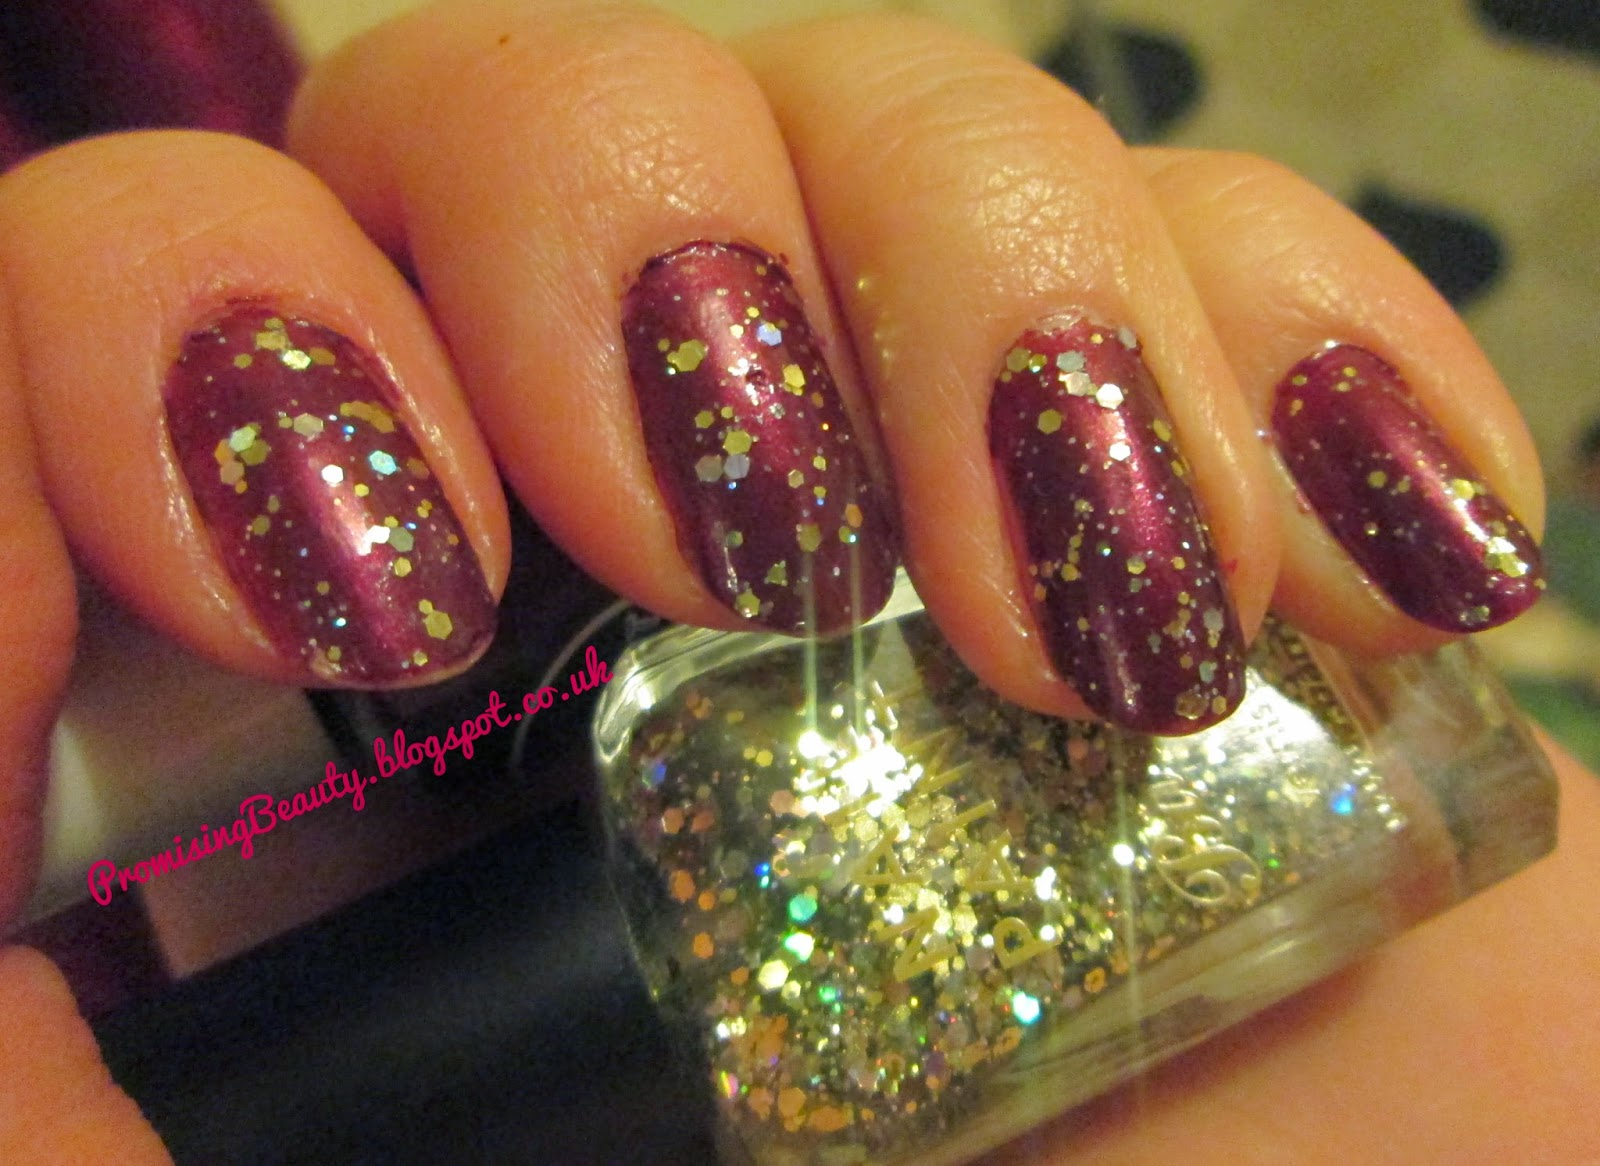 burgundy, deep red autumn nails with gold glitter, oxblood. Barry M